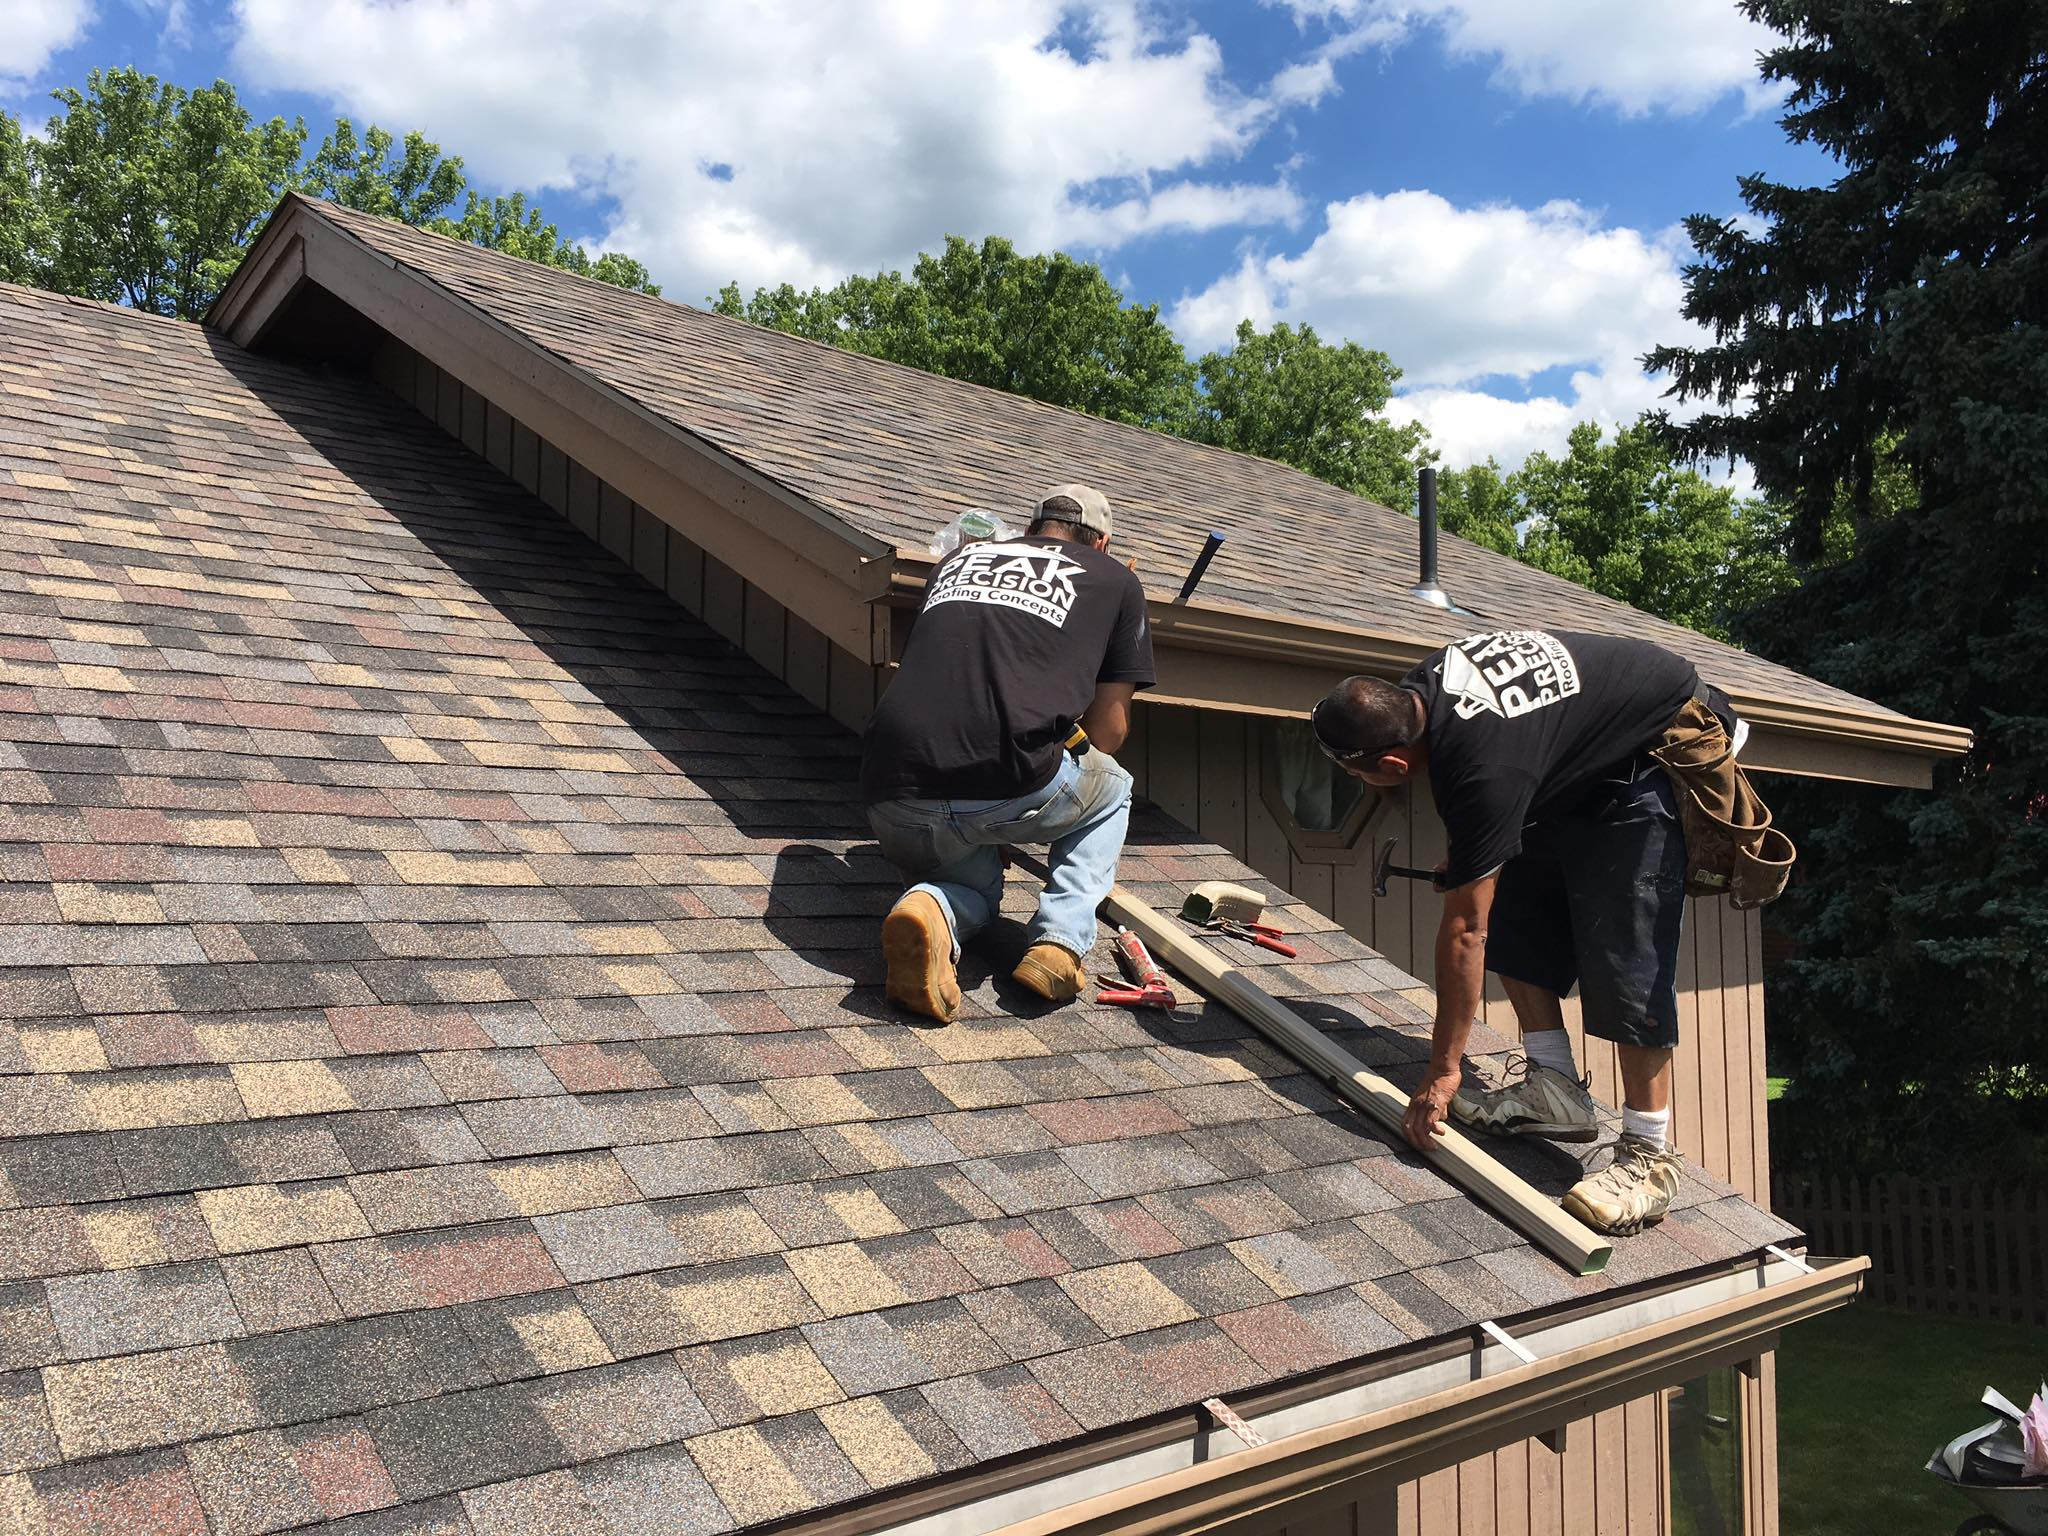 Wind damaged roof repair Pittsburgh-PA; Pittsburgh-PA roof repair experts; roof repair near me; Pittsburgh-PA roofing contractors roofing roofs; emergency roof repairs Pittsburgh-PA; emergency roofers Pittsburgh-PA;